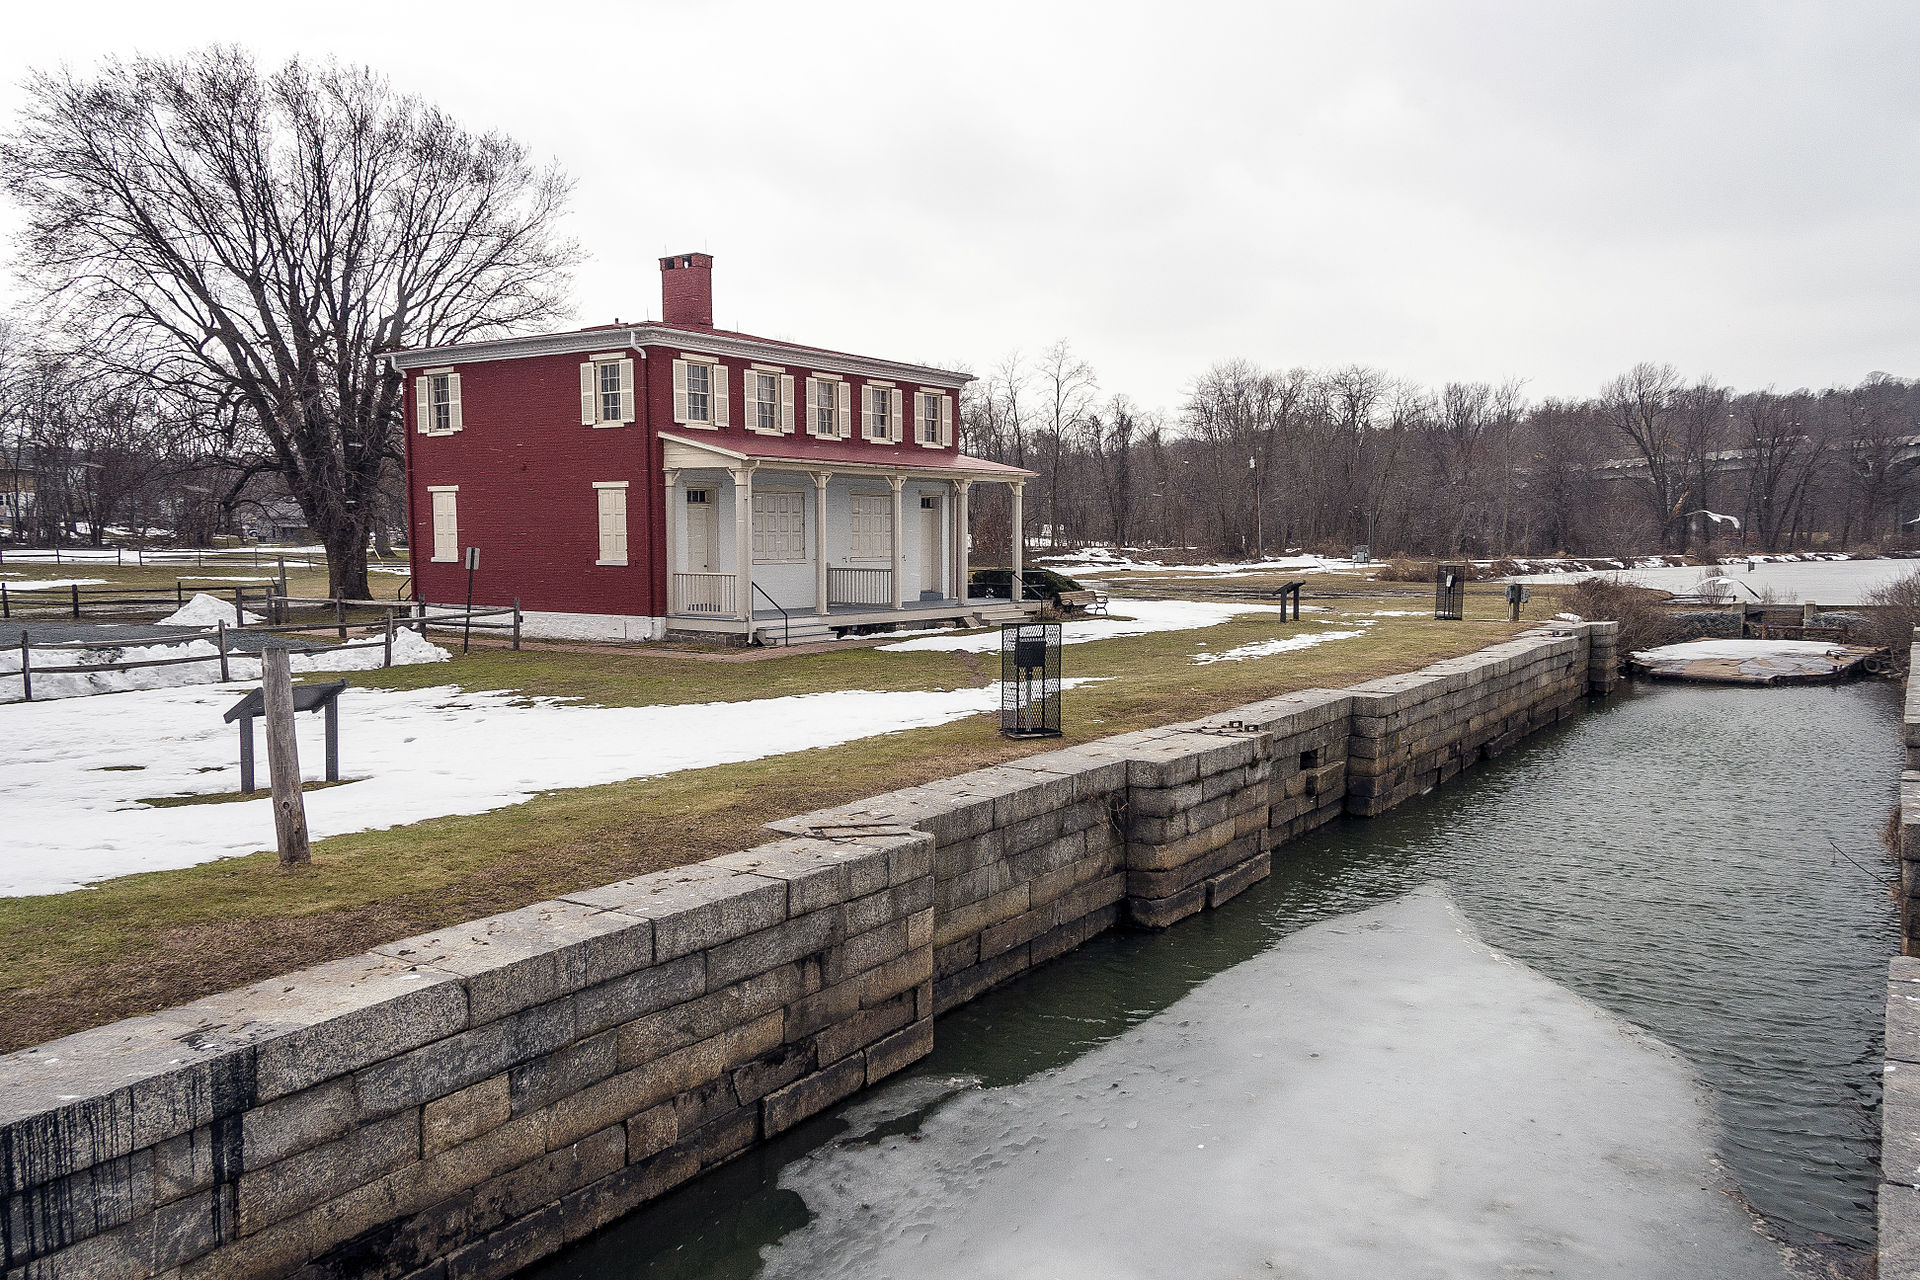 The Lock House Museum and walls of the Susquehanna canal